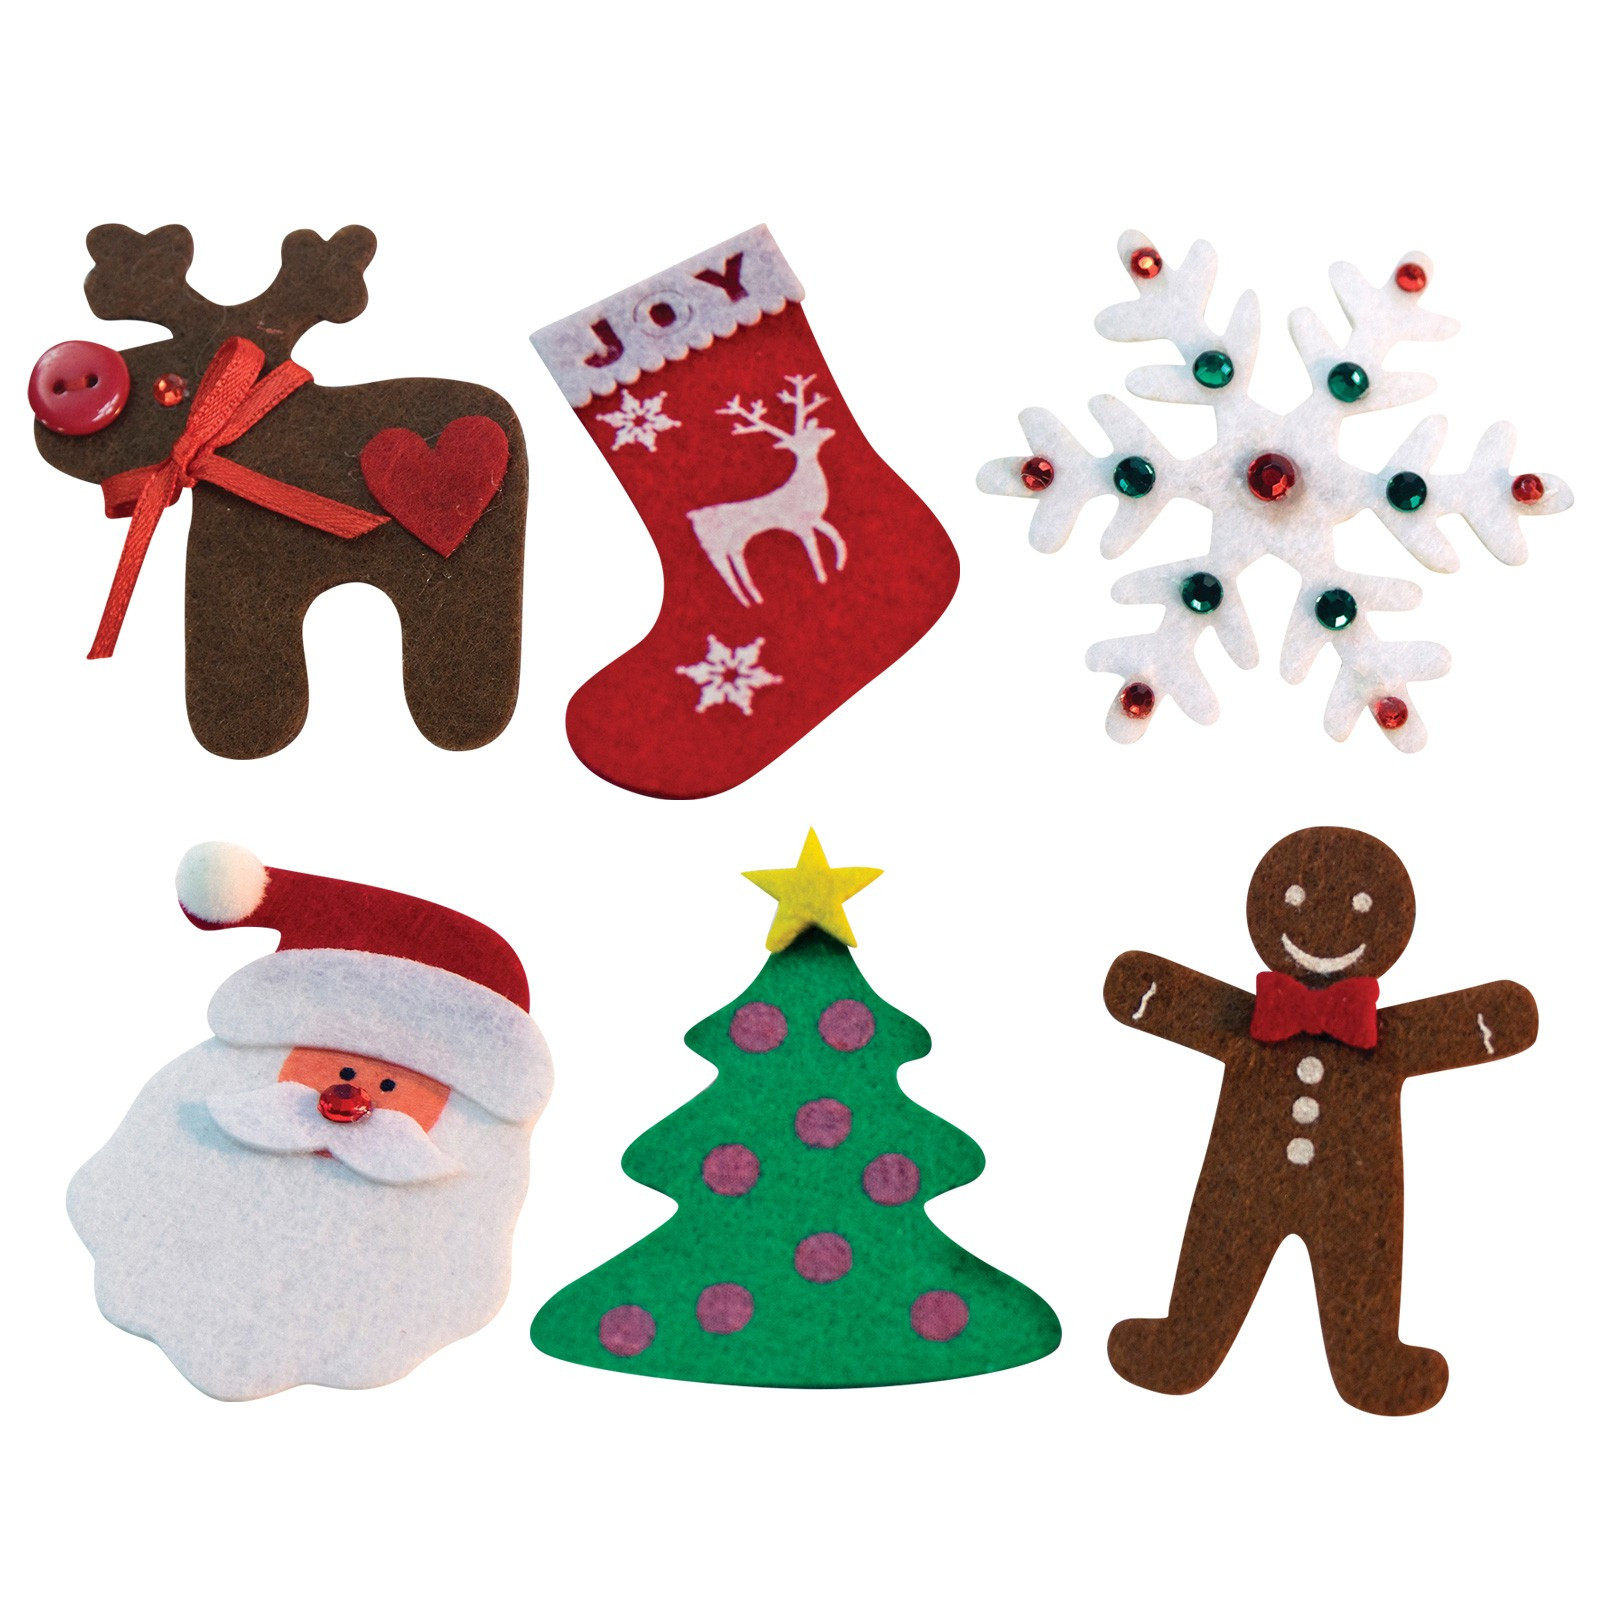 DIY Ugly Sweater Kit  Christmas Ugly Sweater DIY Add Adult Costume Accessory